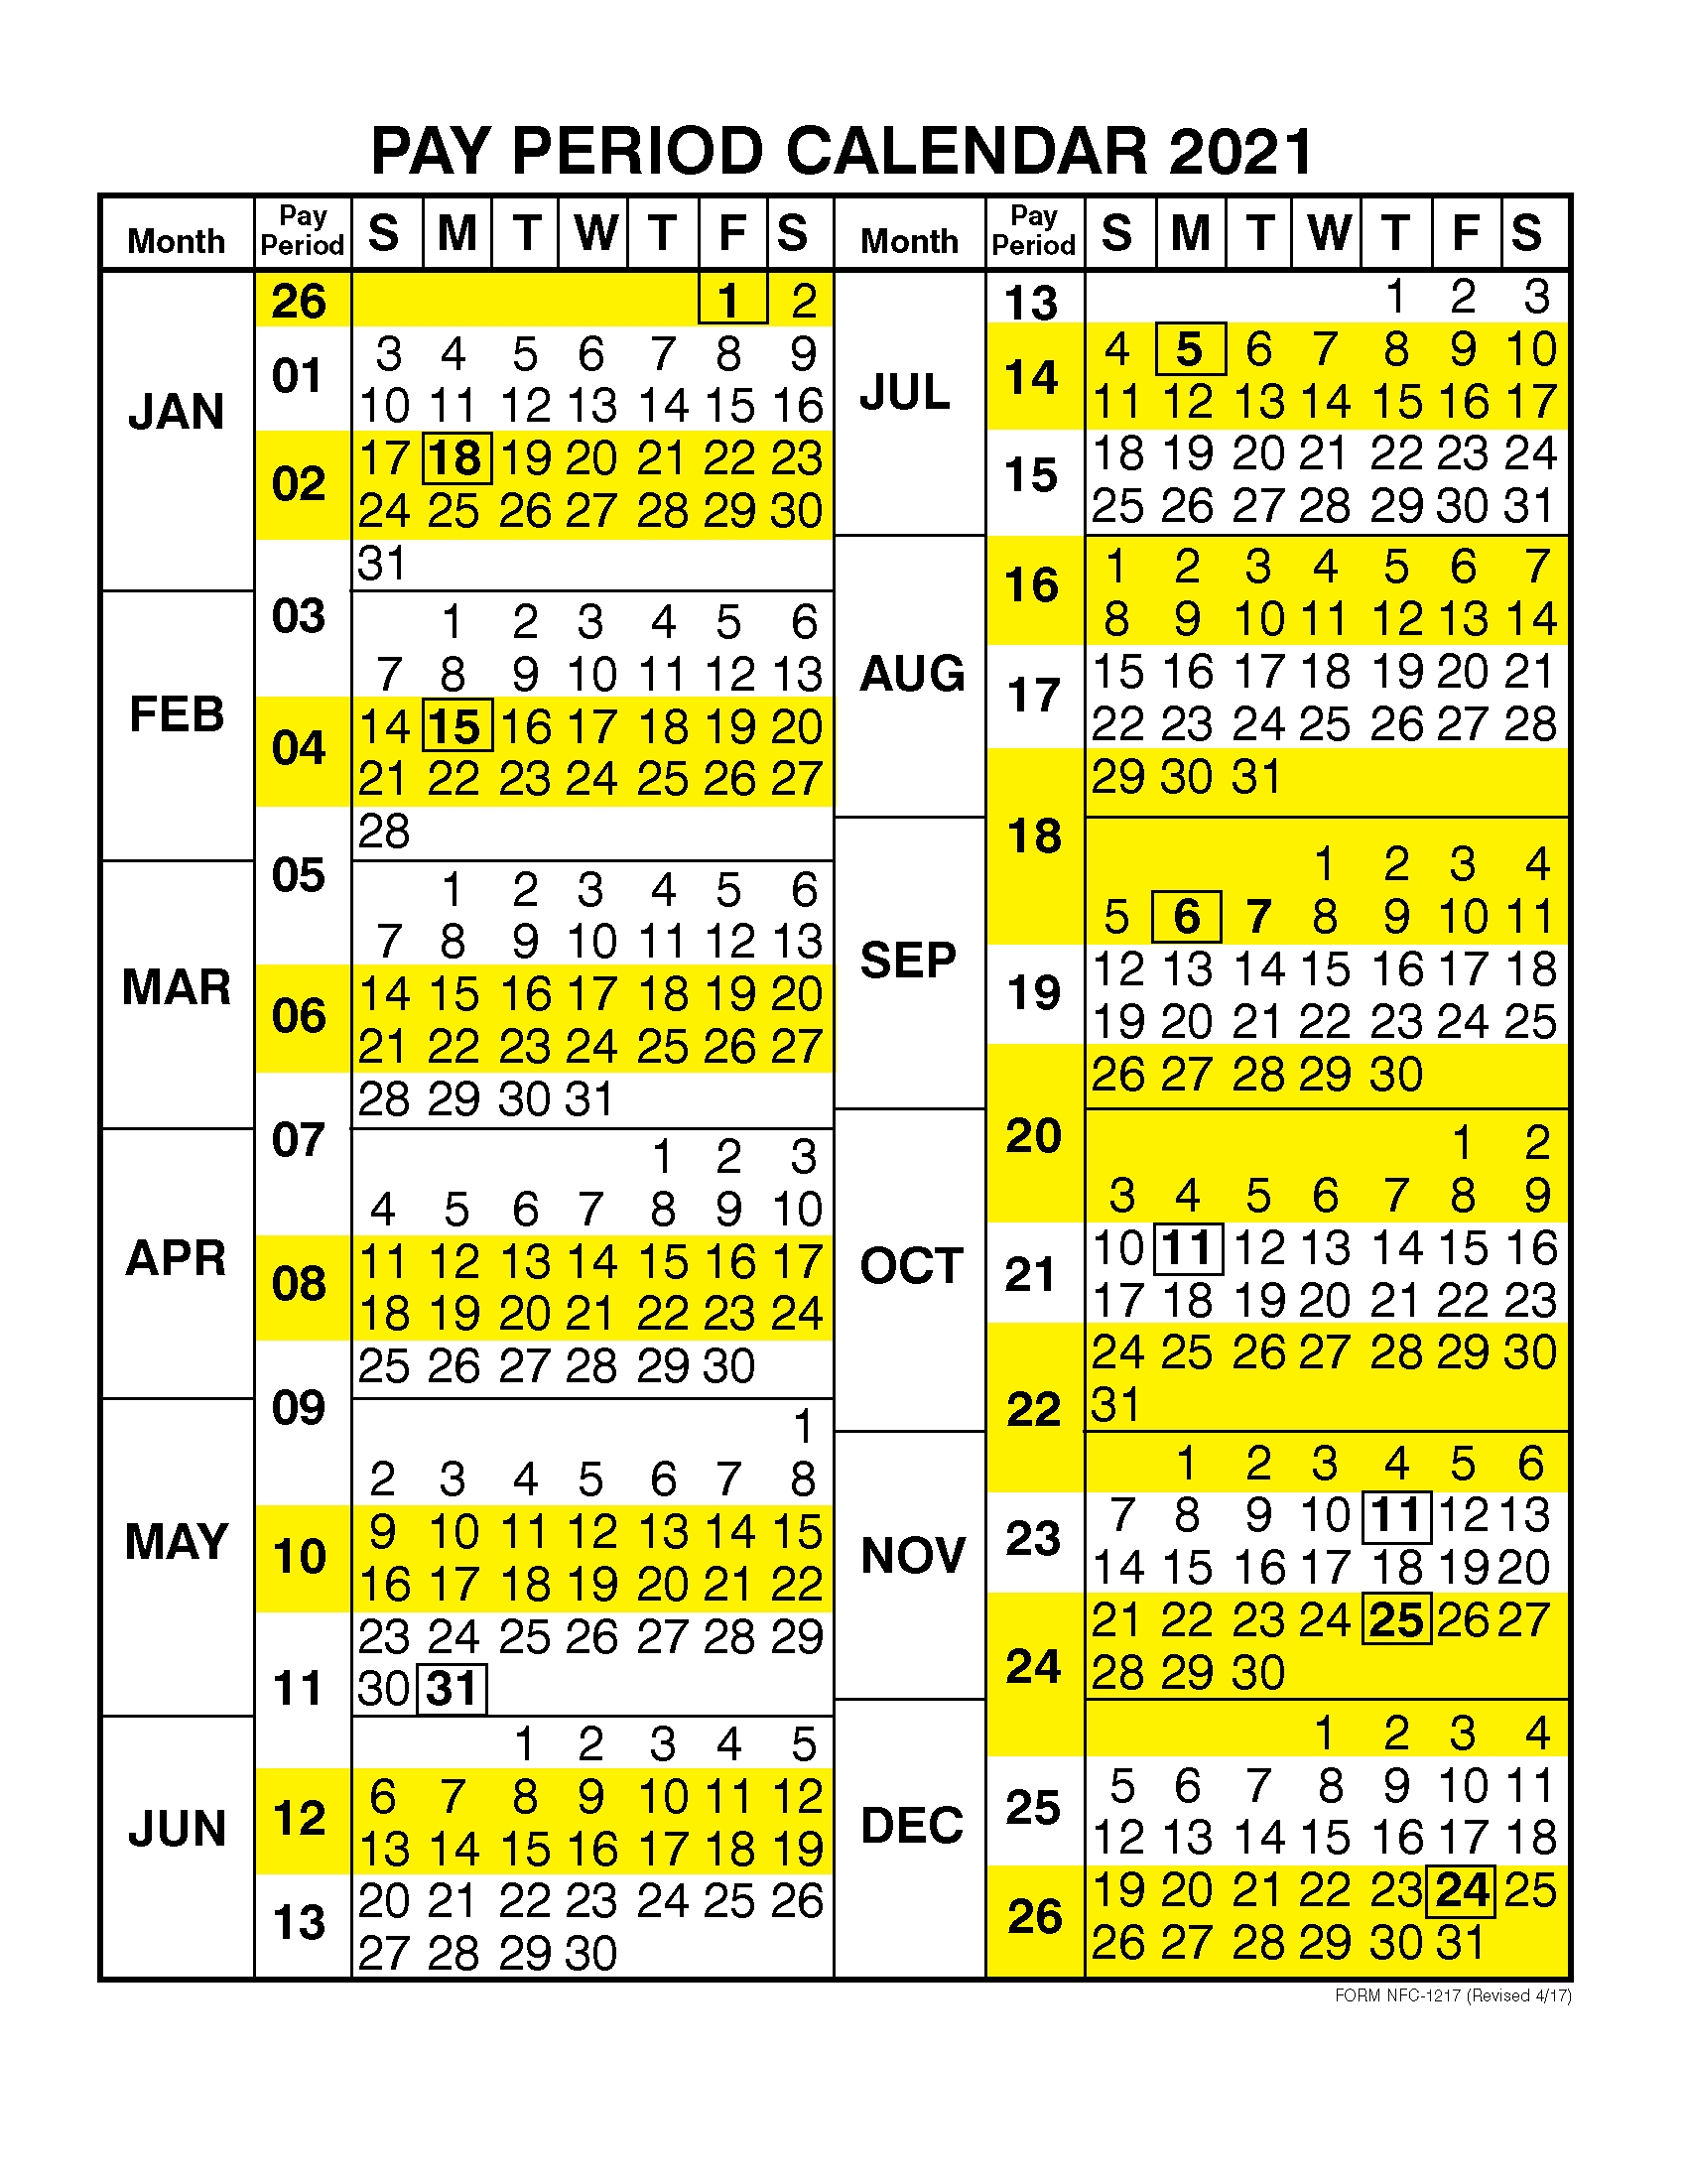 2021 Federal Pay Period Calendar Opm